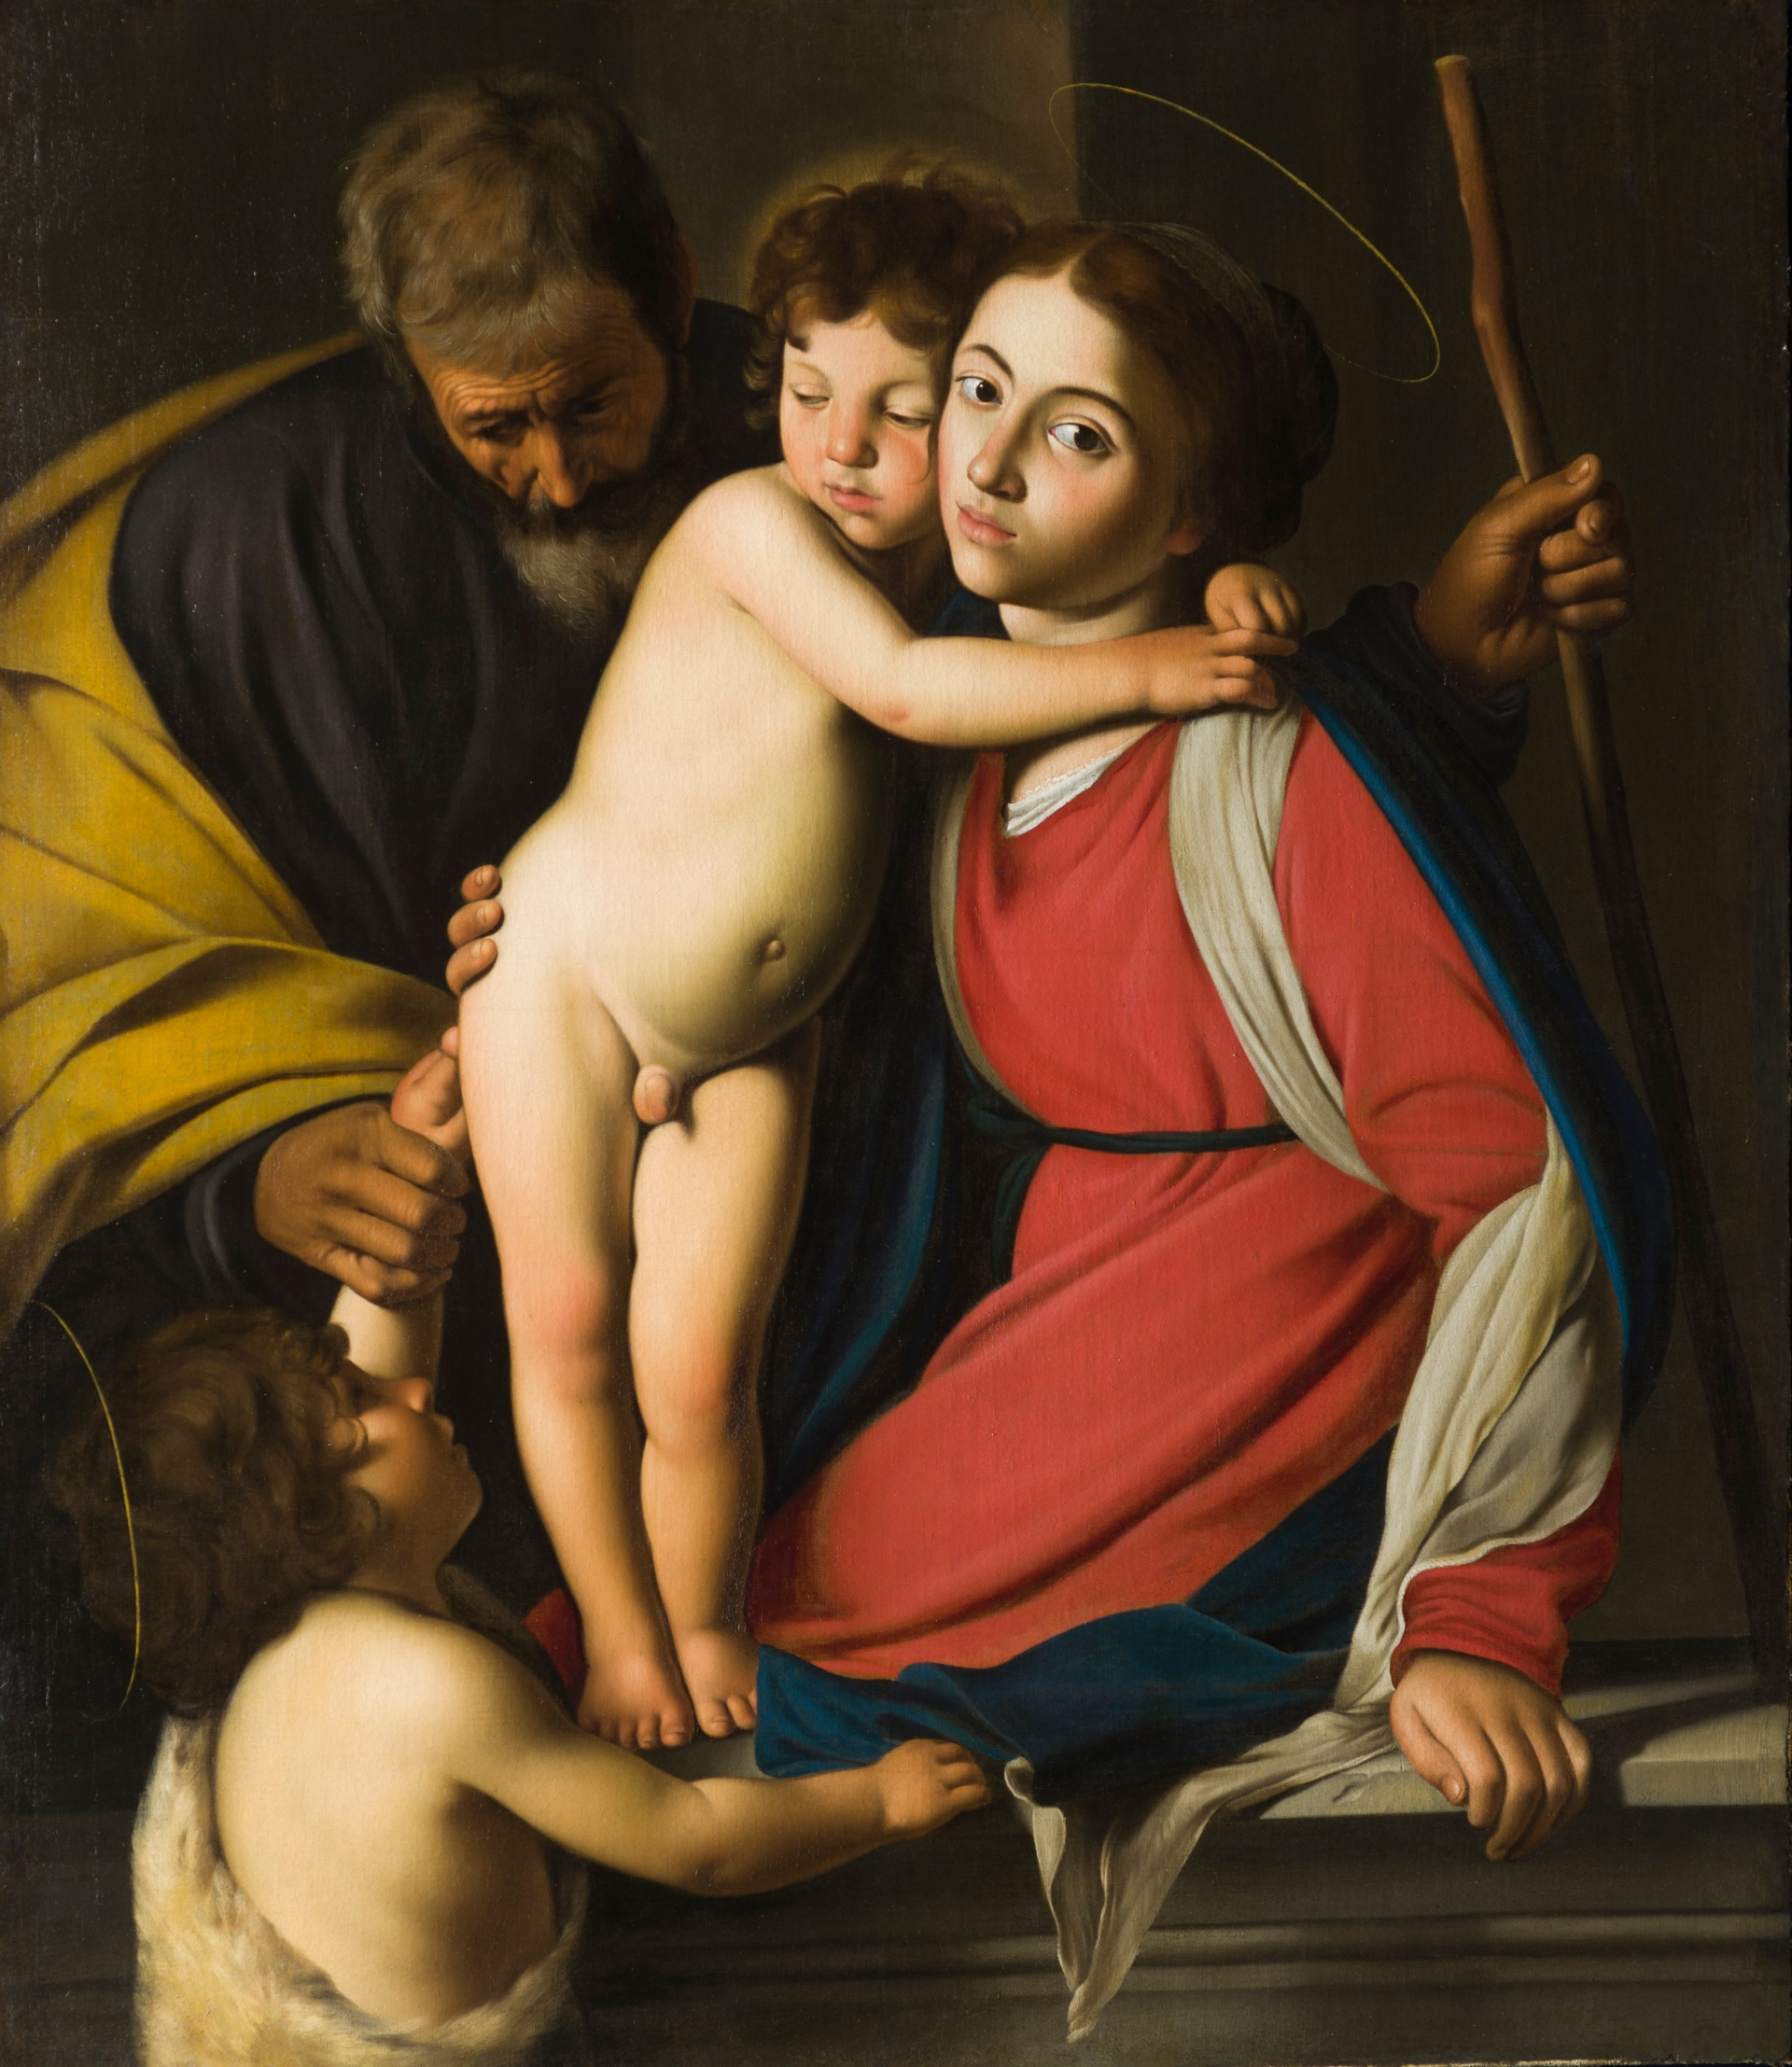 1342_juan-bautista-maino_the-holy-family_oil-on-canvas_106-x-93-cm-unframed_small-1